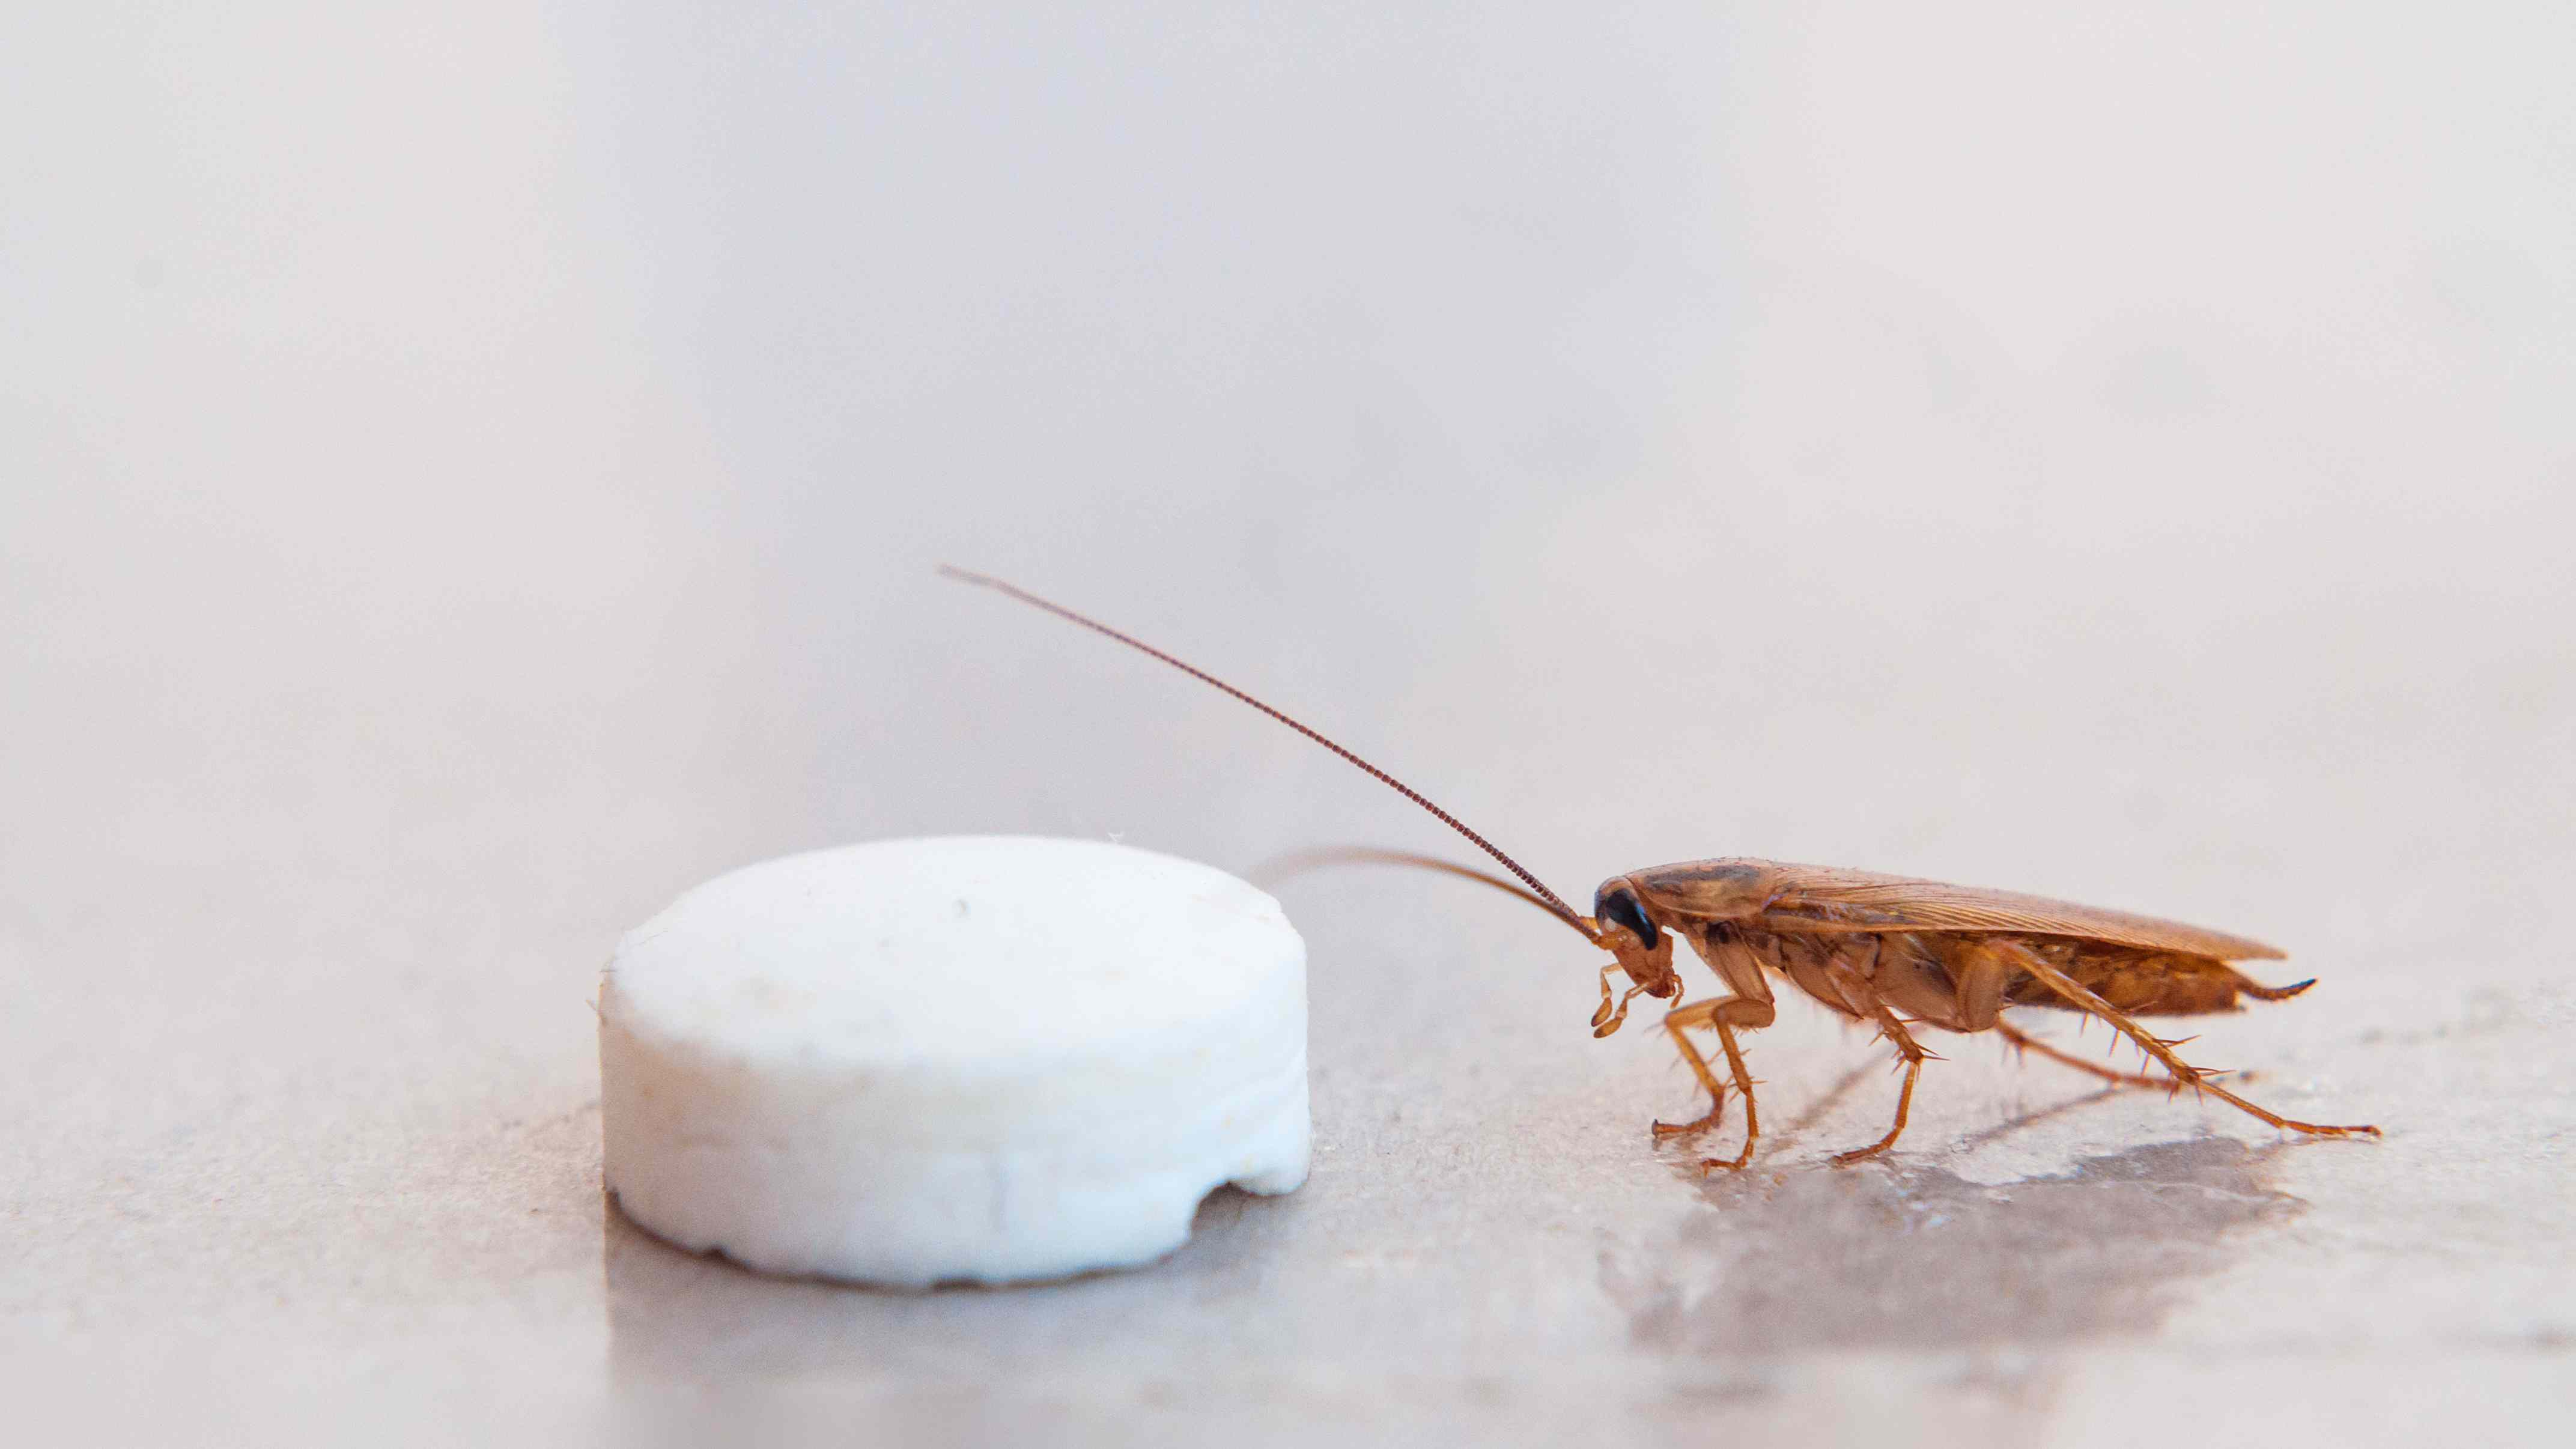 The cockroach crawled to the bait in the form of pills and fall into the trap of sticking to the sticky surface.